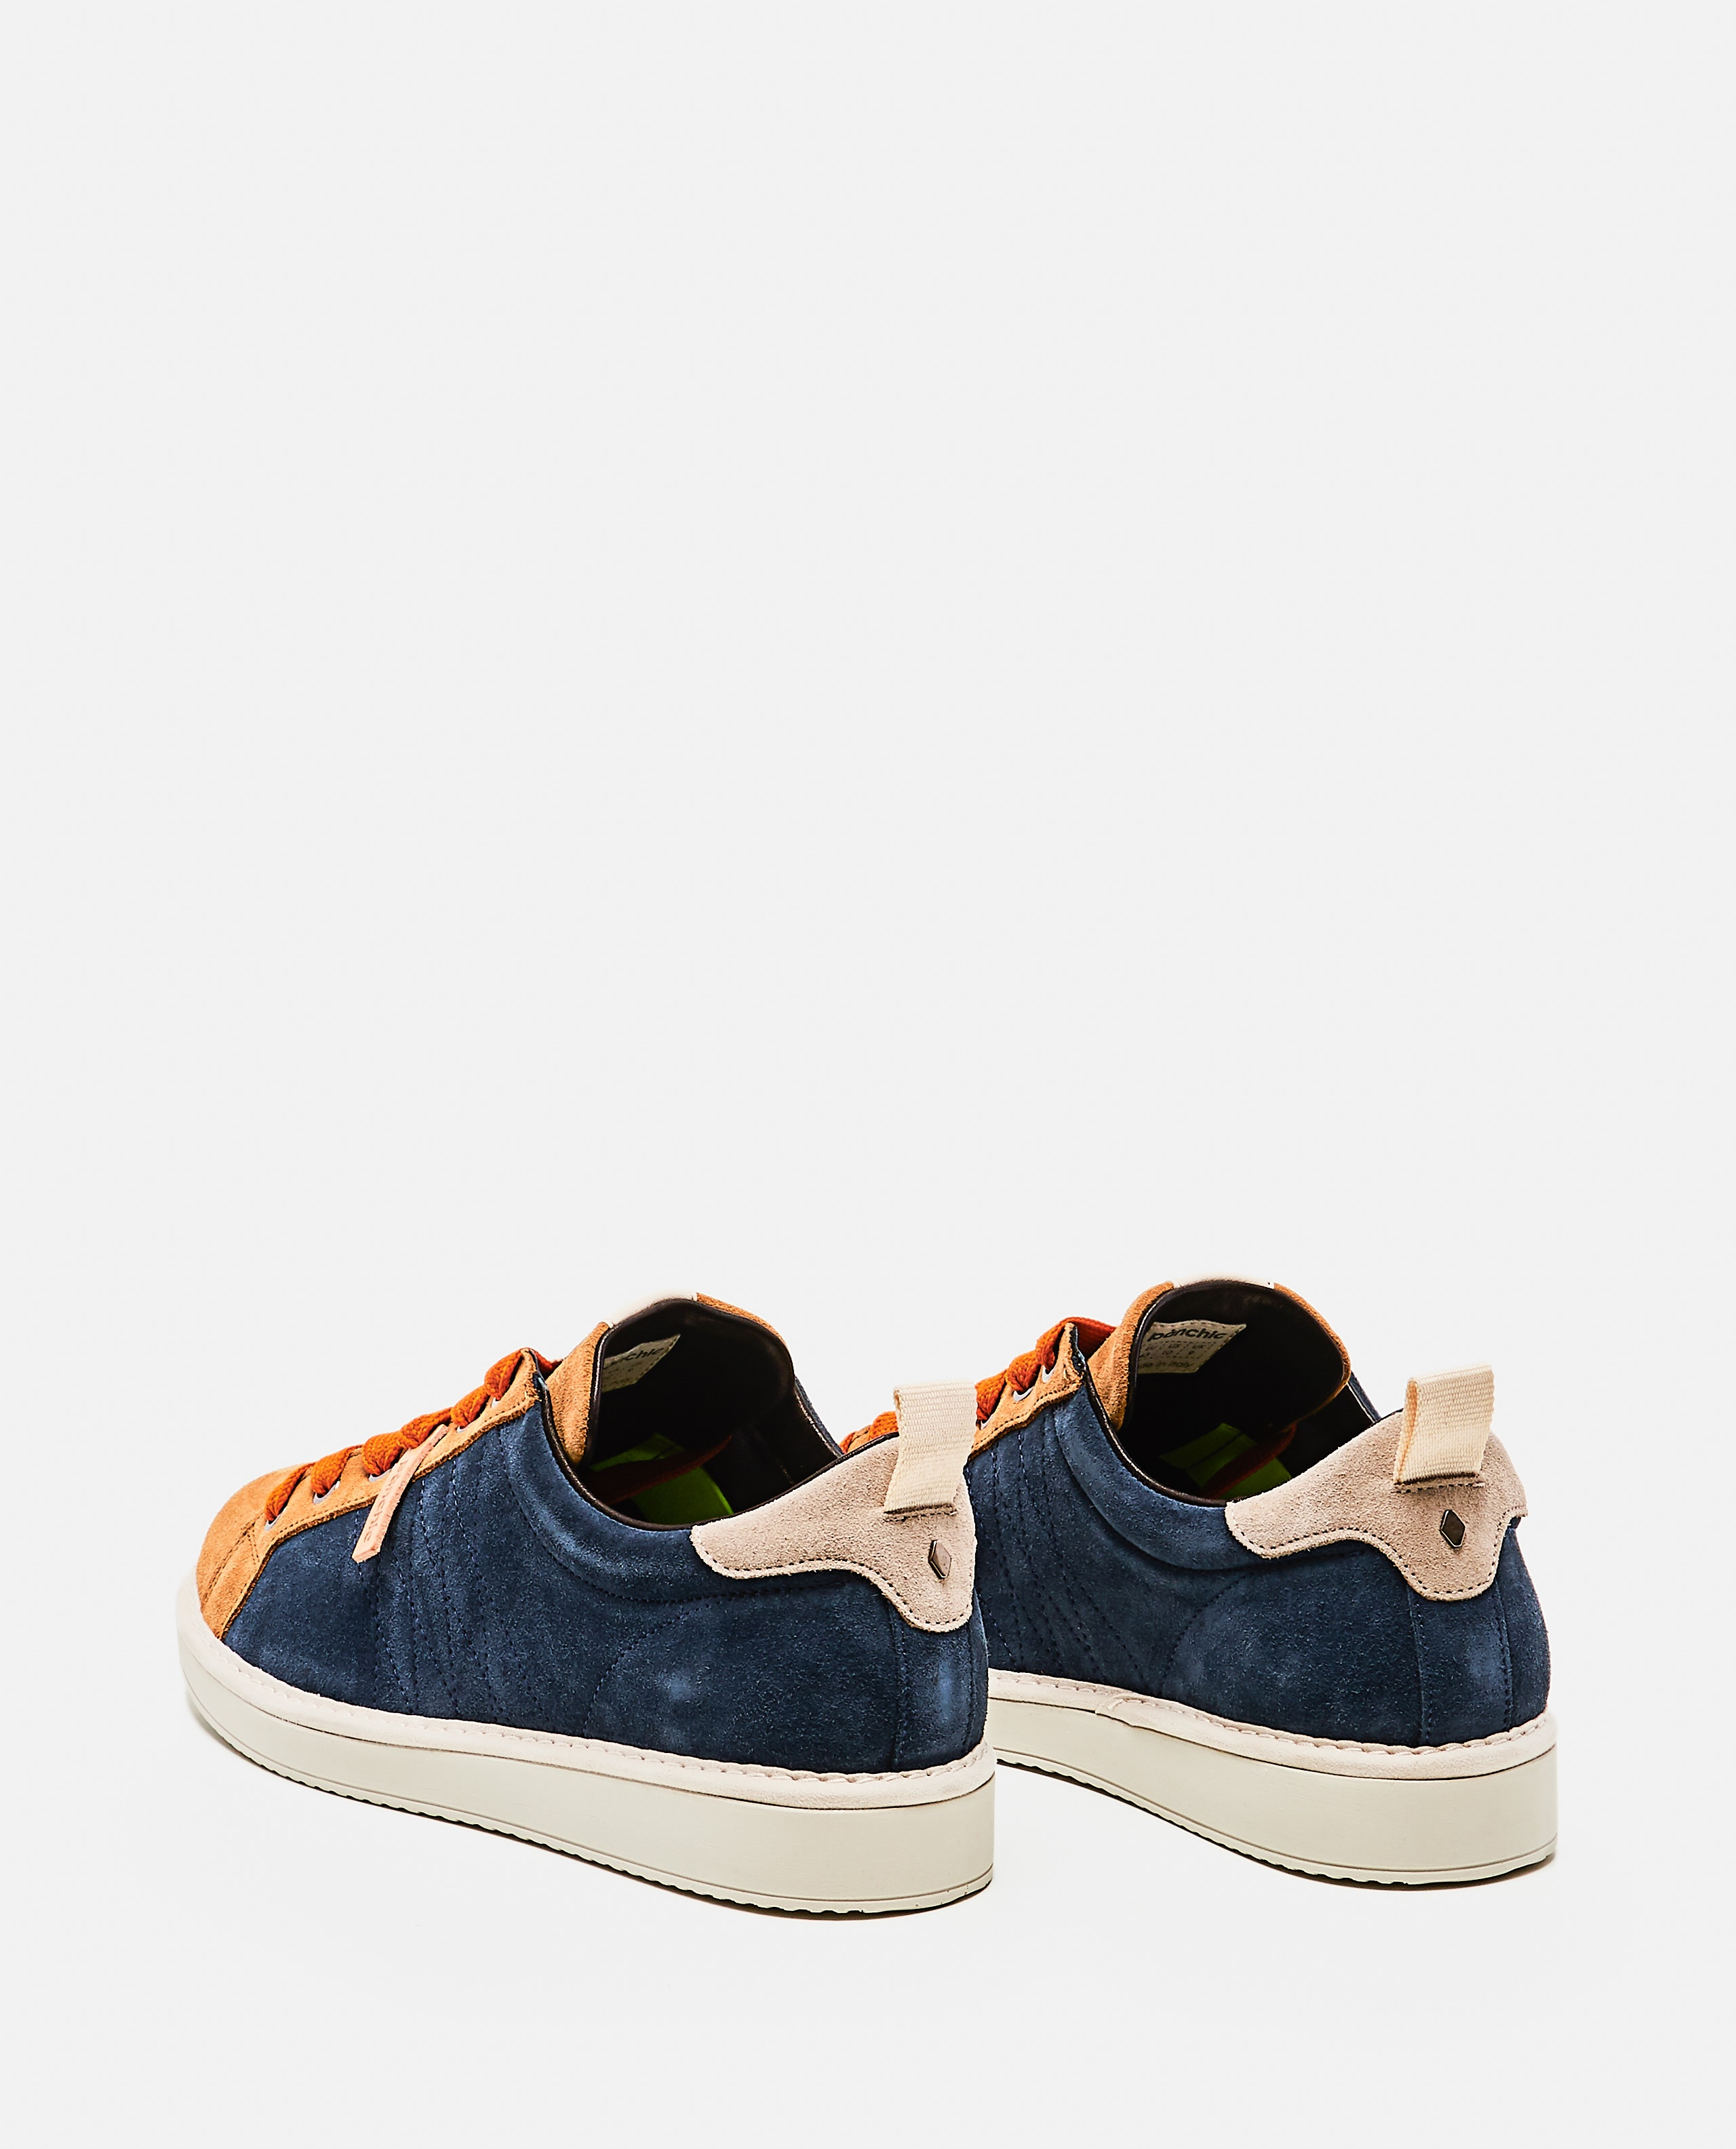 Sneakers in pelle Uomo Panchic 000278450041047 3